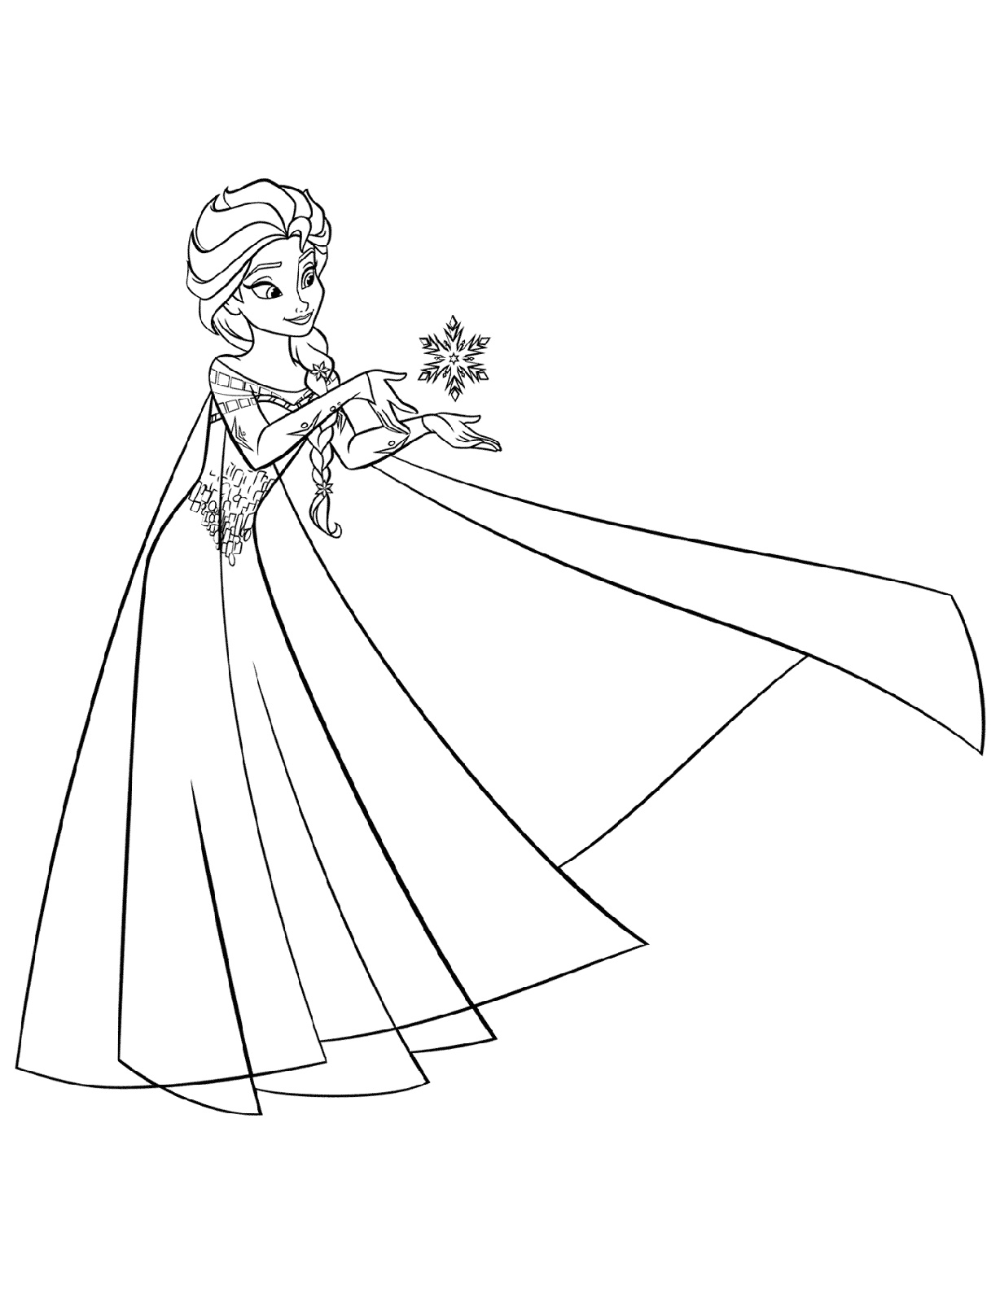 Elsa Coloring Pages Frozen Elsa Coloring Pages Elsa Coloring Frozen Coloring Pages